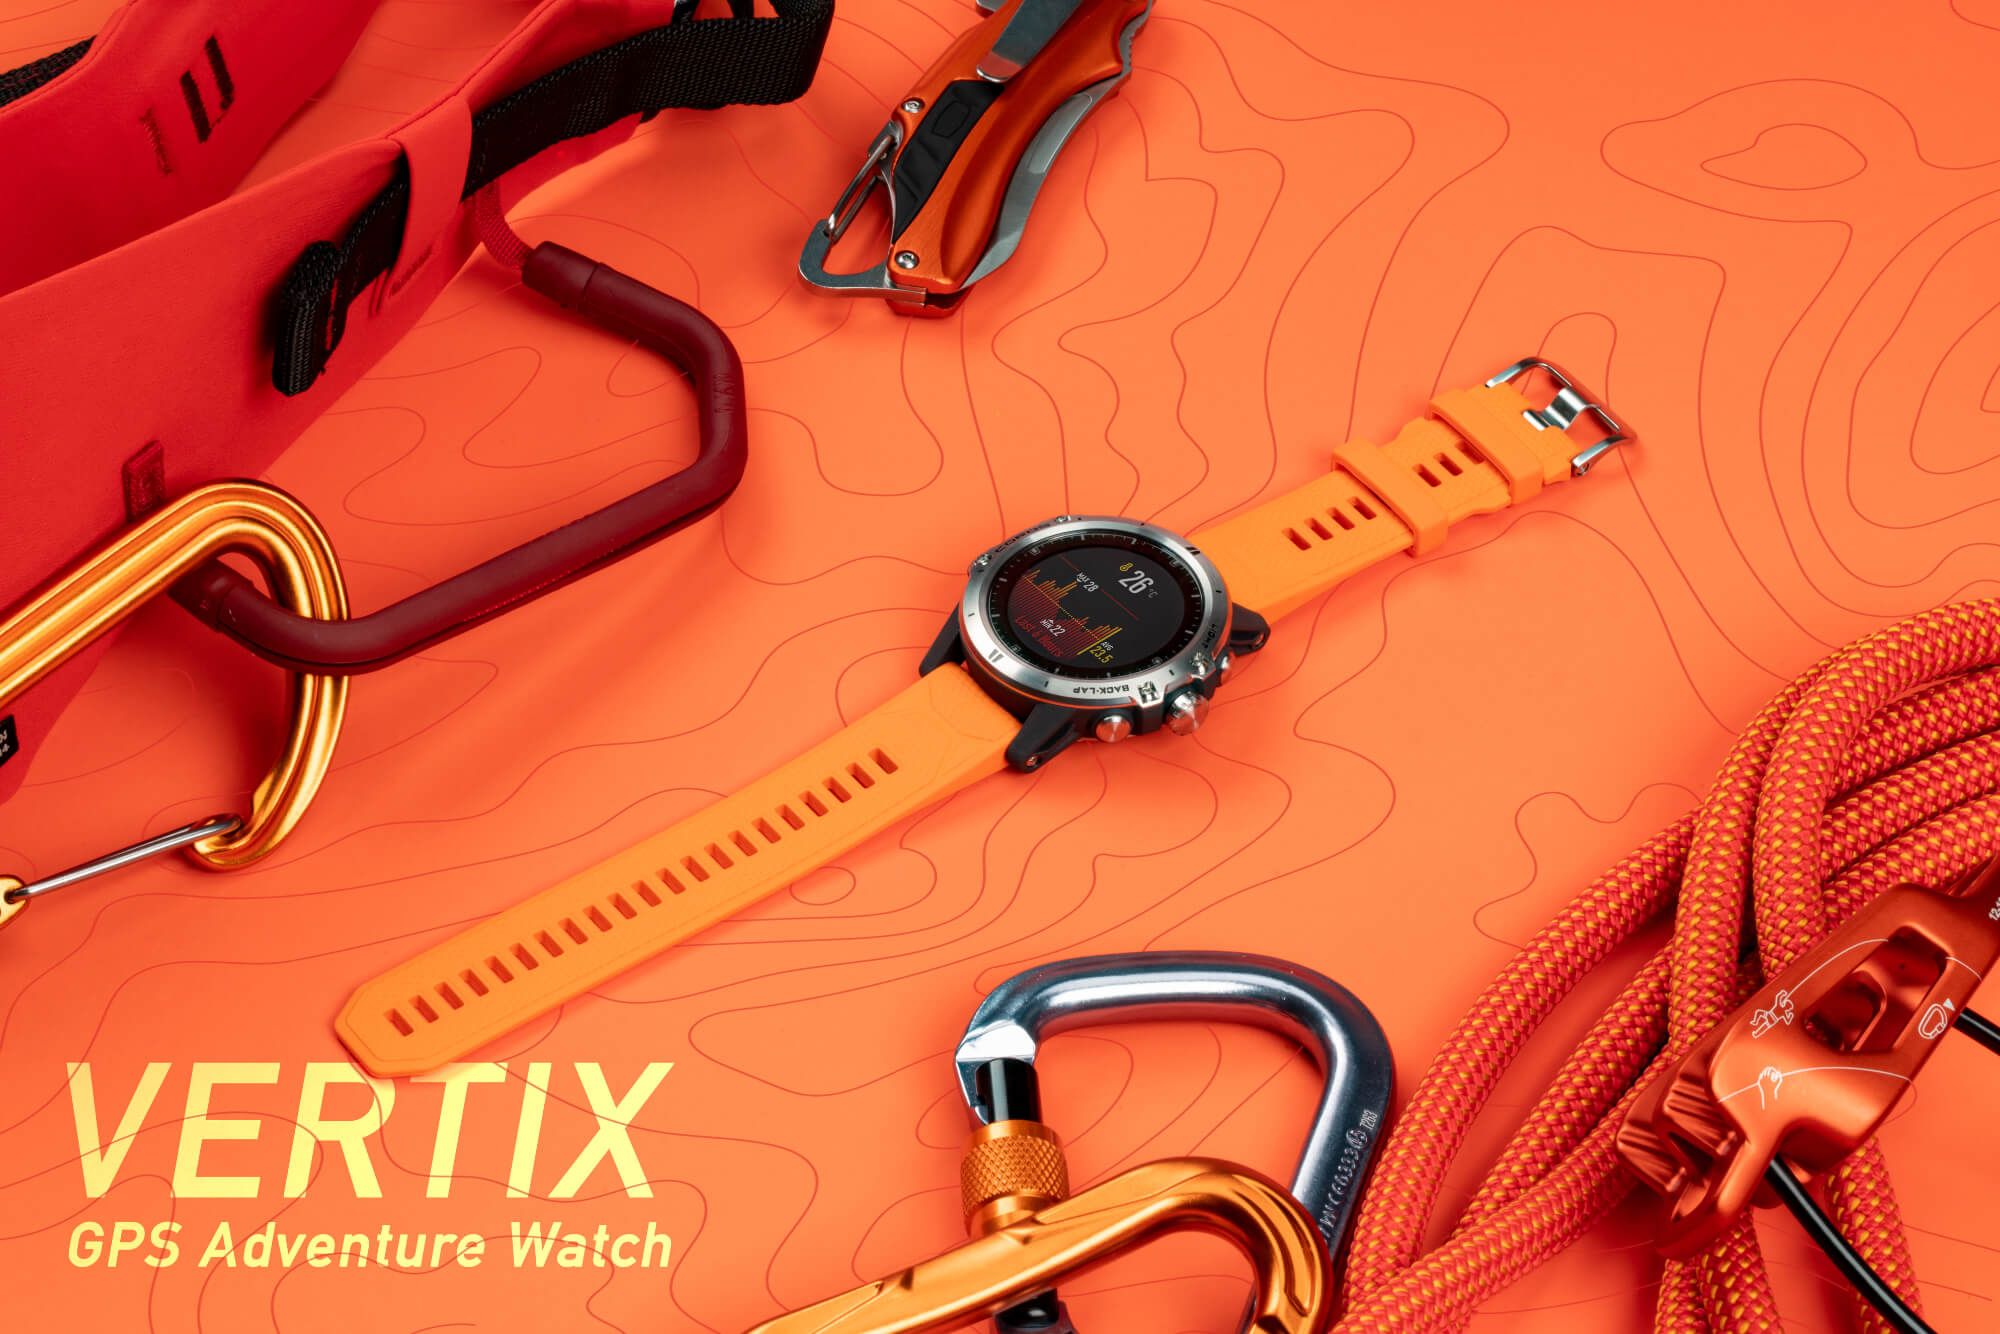 COROS Vertix - rugged YET premium. Premium and high-end materials such as titanium and sapphire. 150-meter waterprooof rating.